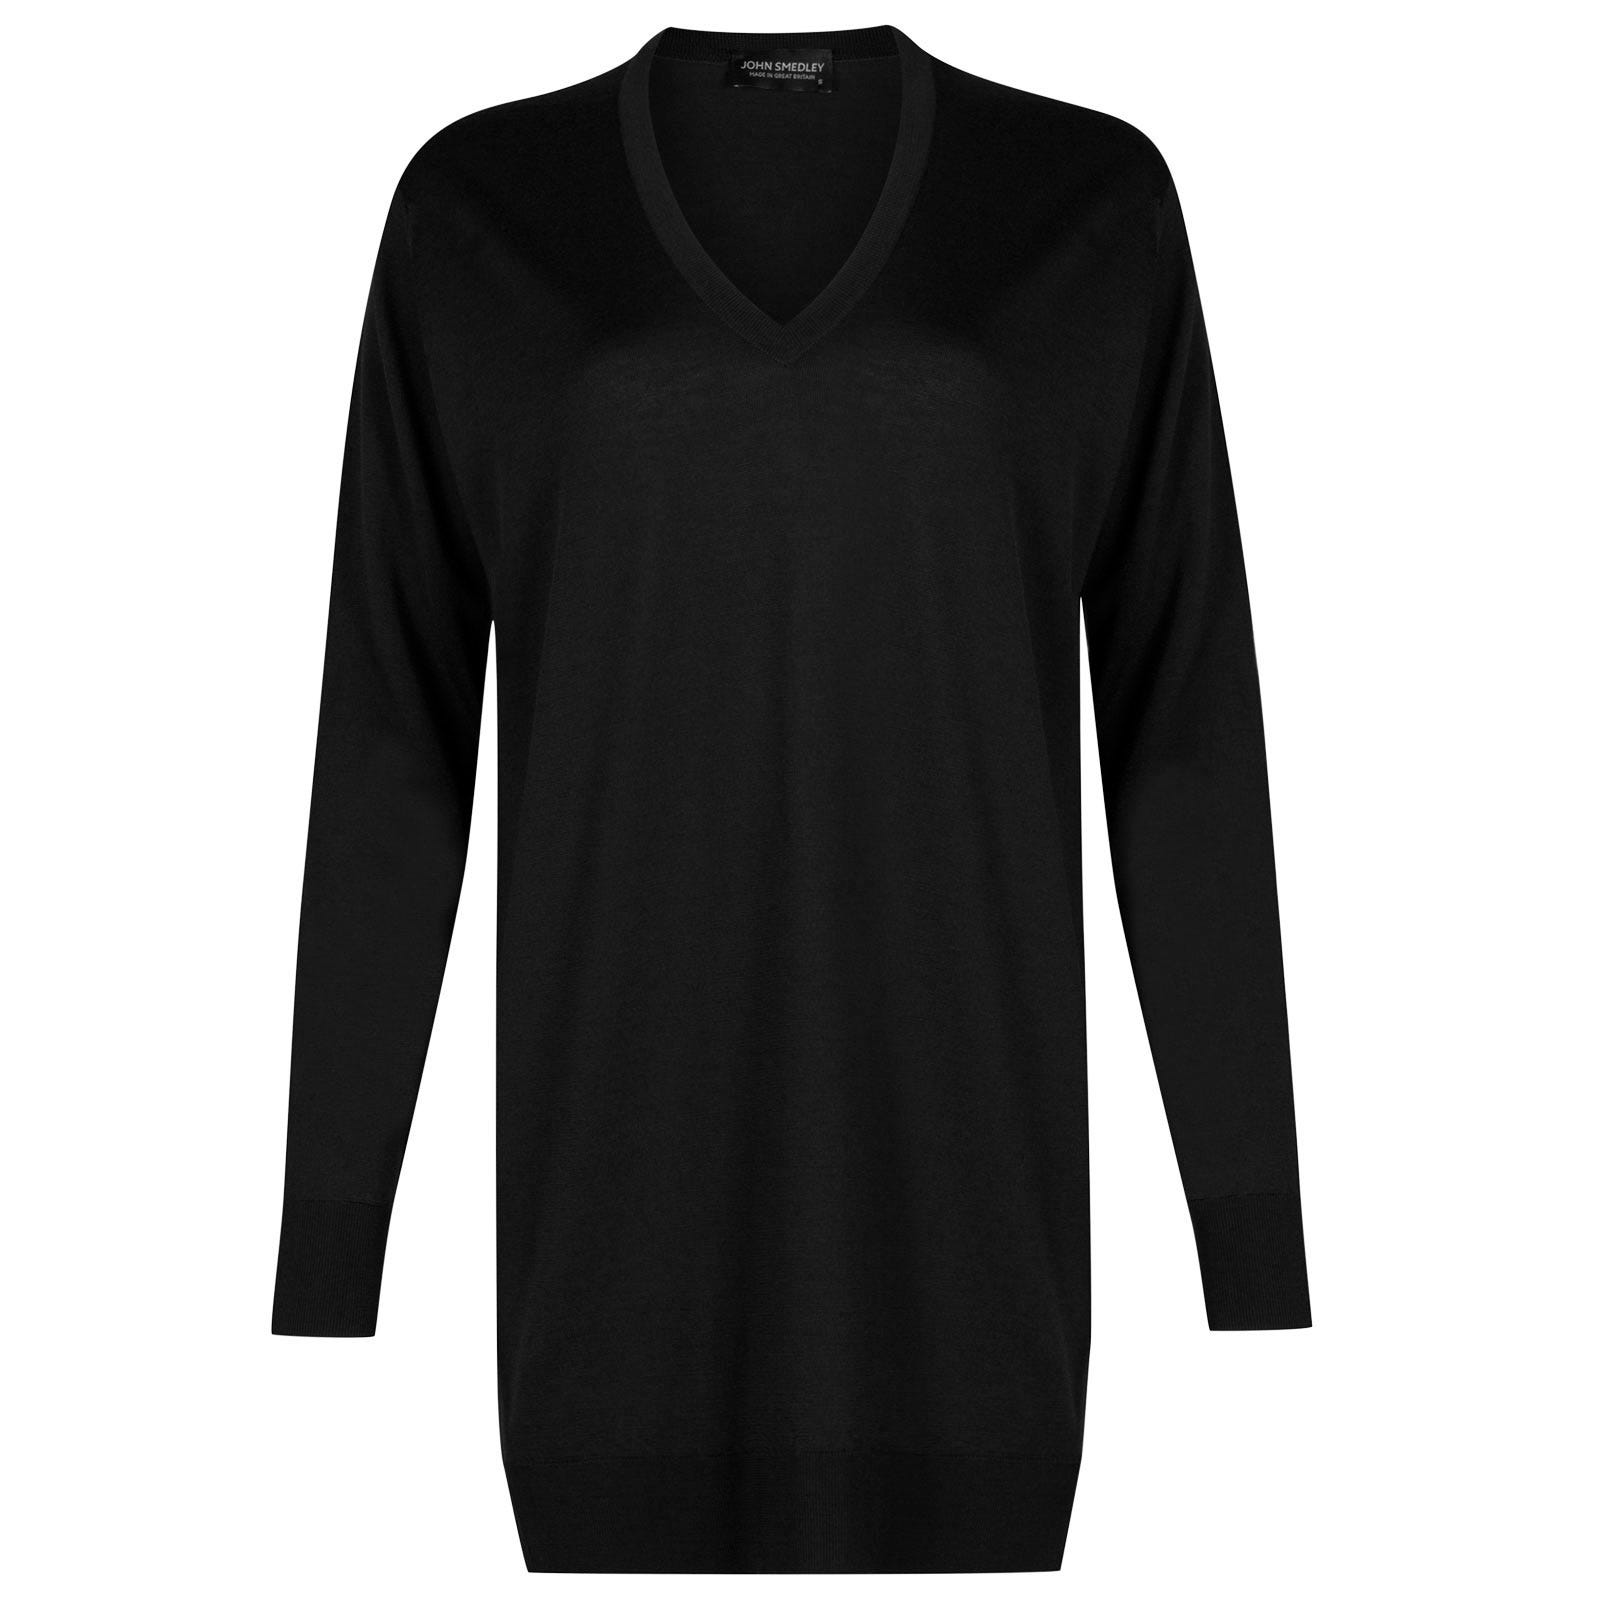 John Smedley Alma Merino Wool Sweater in Black-S